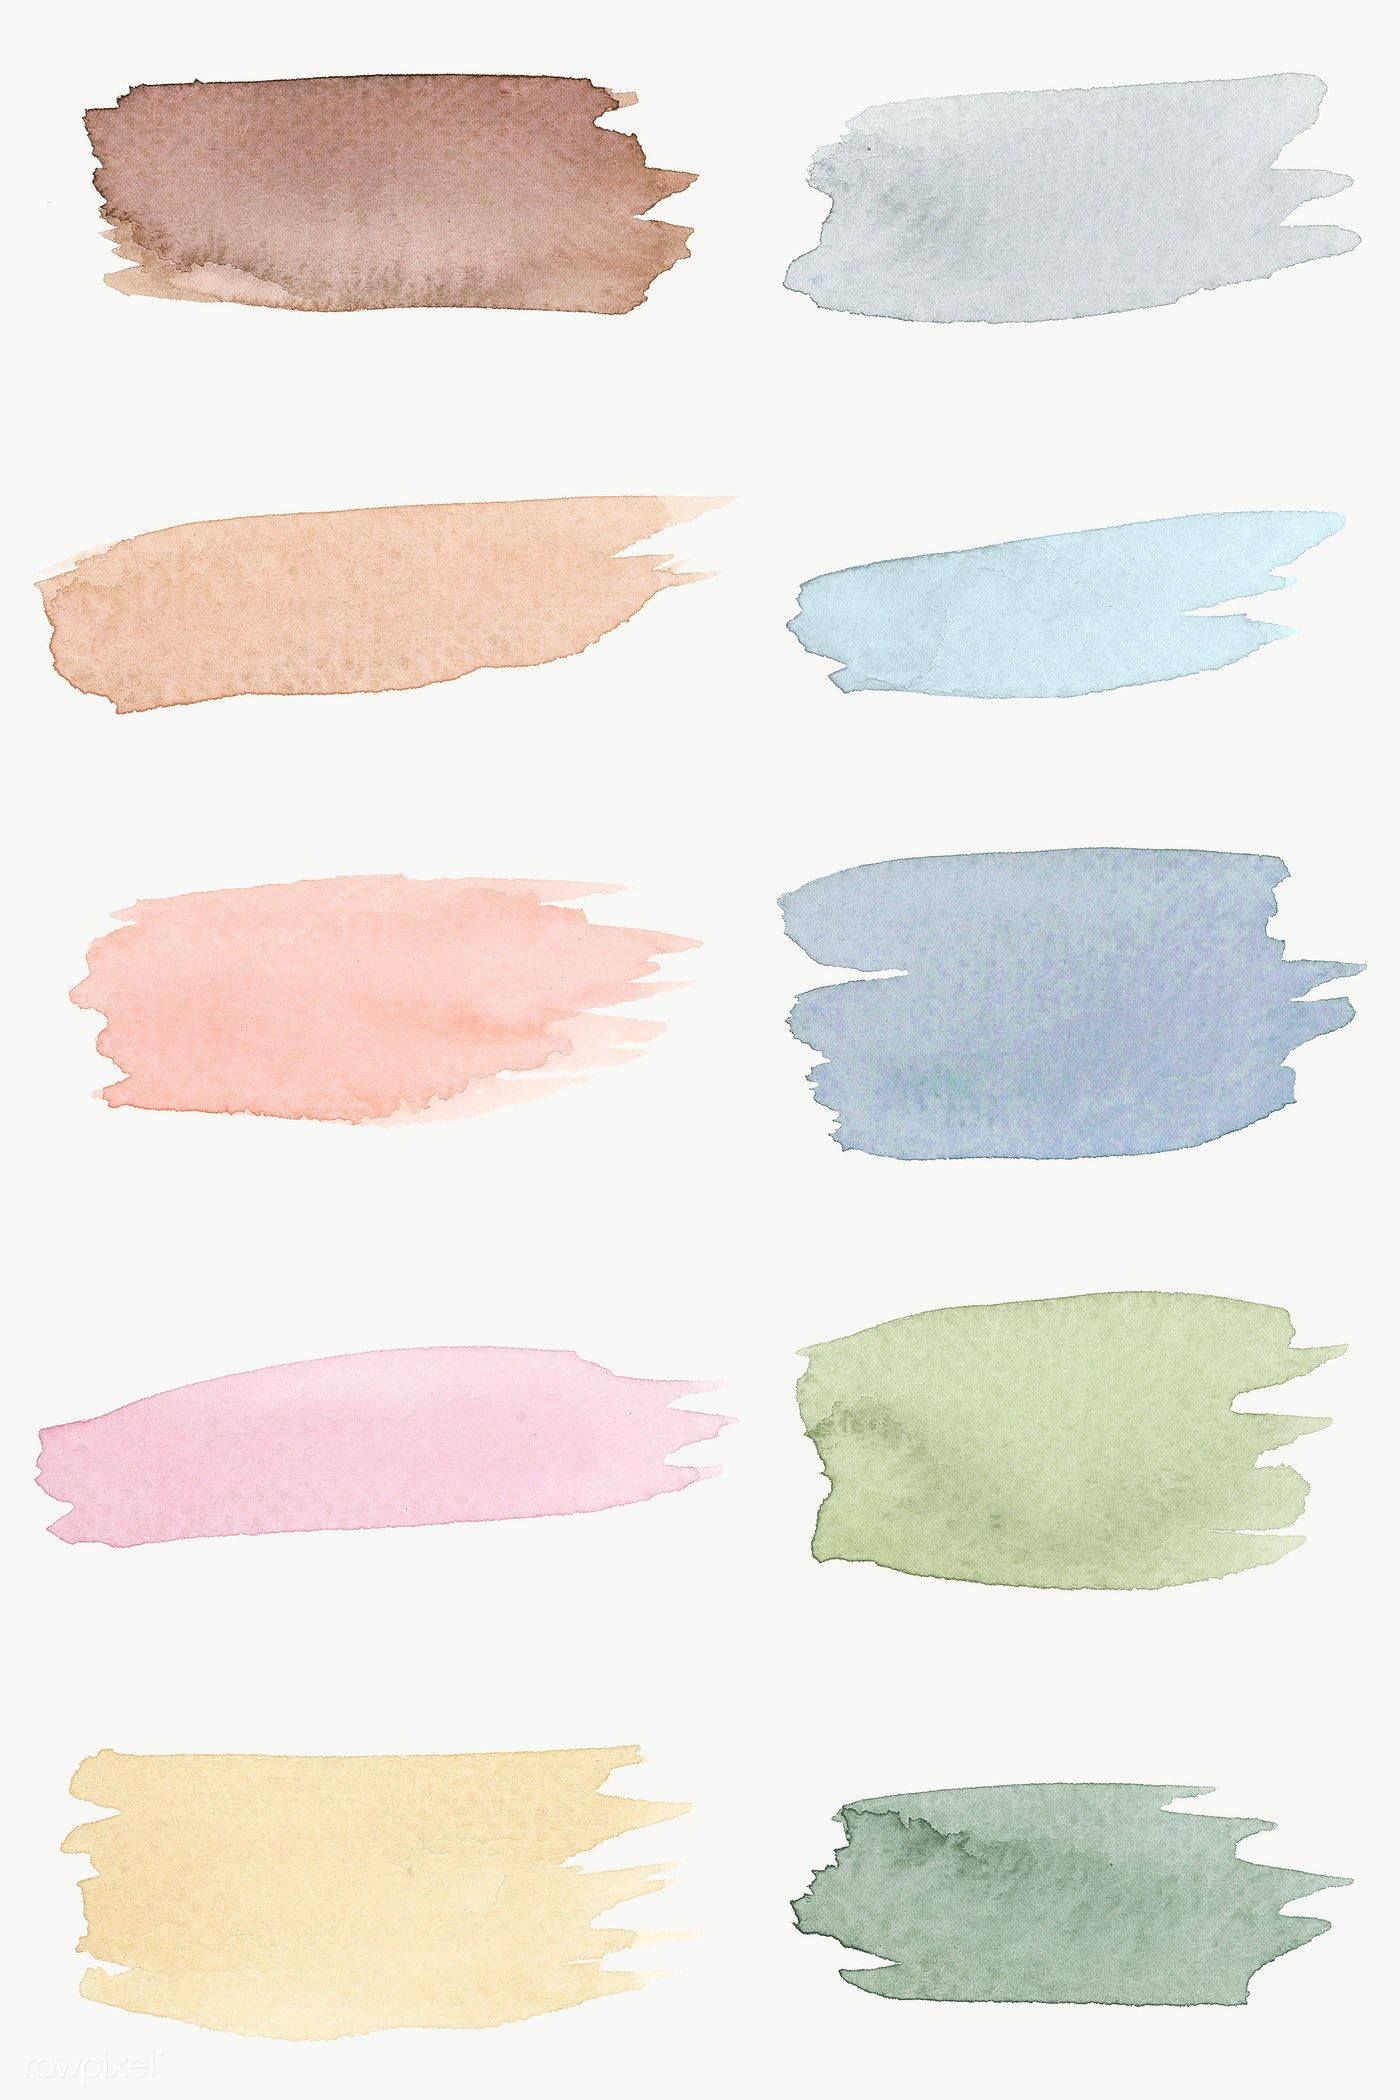 Round Faded Watercolor Set Illustration Free Image By Rawpixel